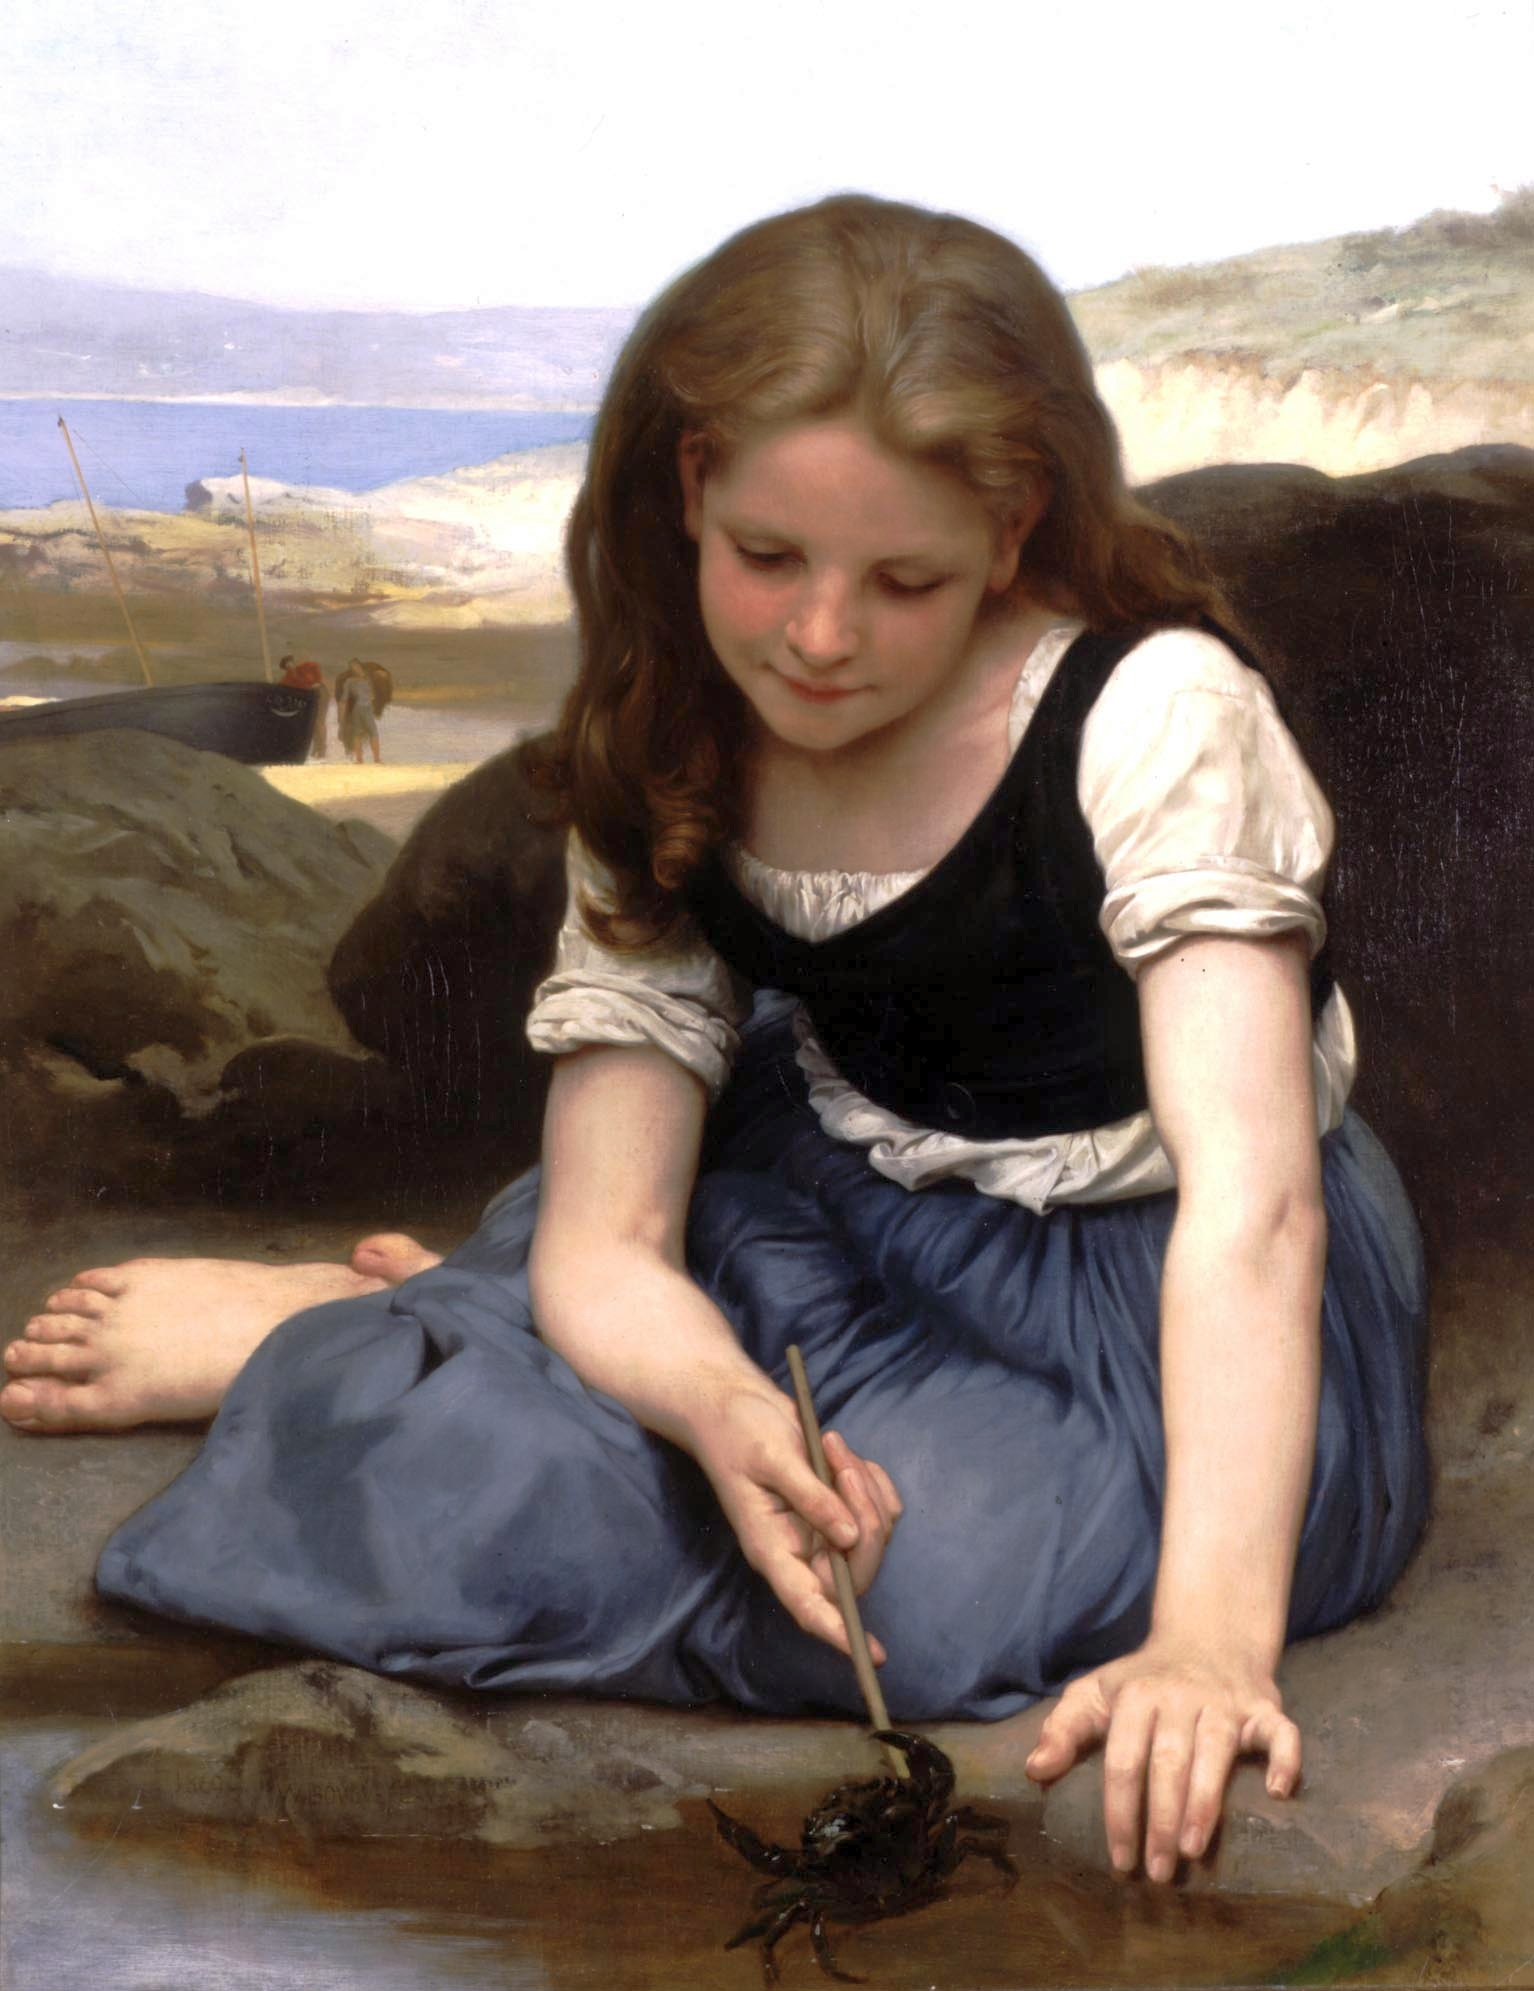 http://uploads1.wikipaintings.org/images/william-adolphe-bouguereau/the-crab-1869.jpg